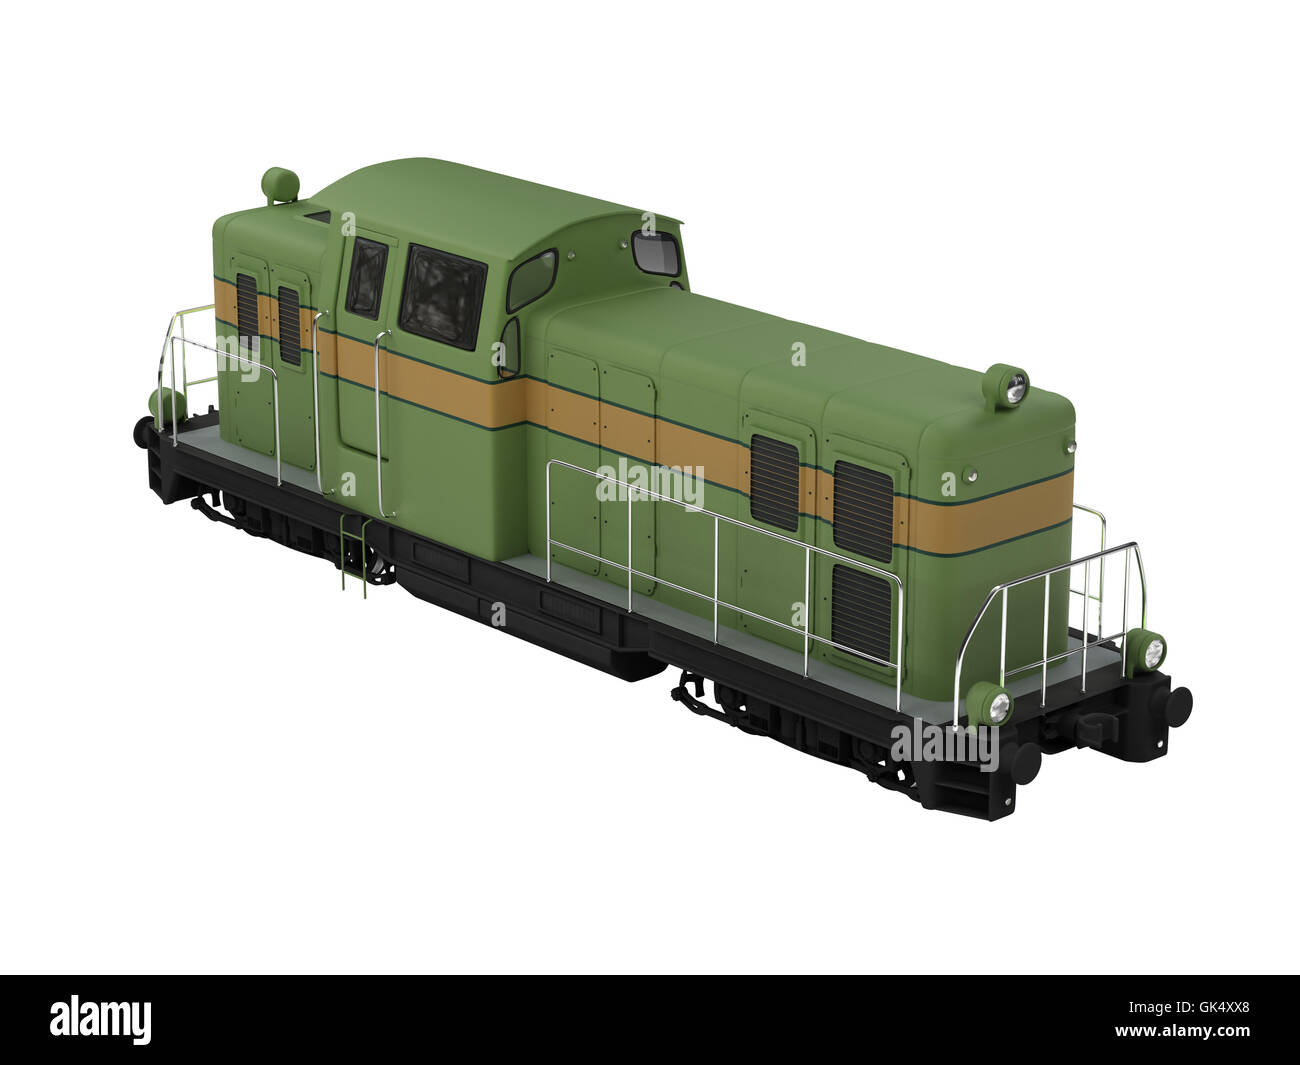 railway locomotive train - Stock Image